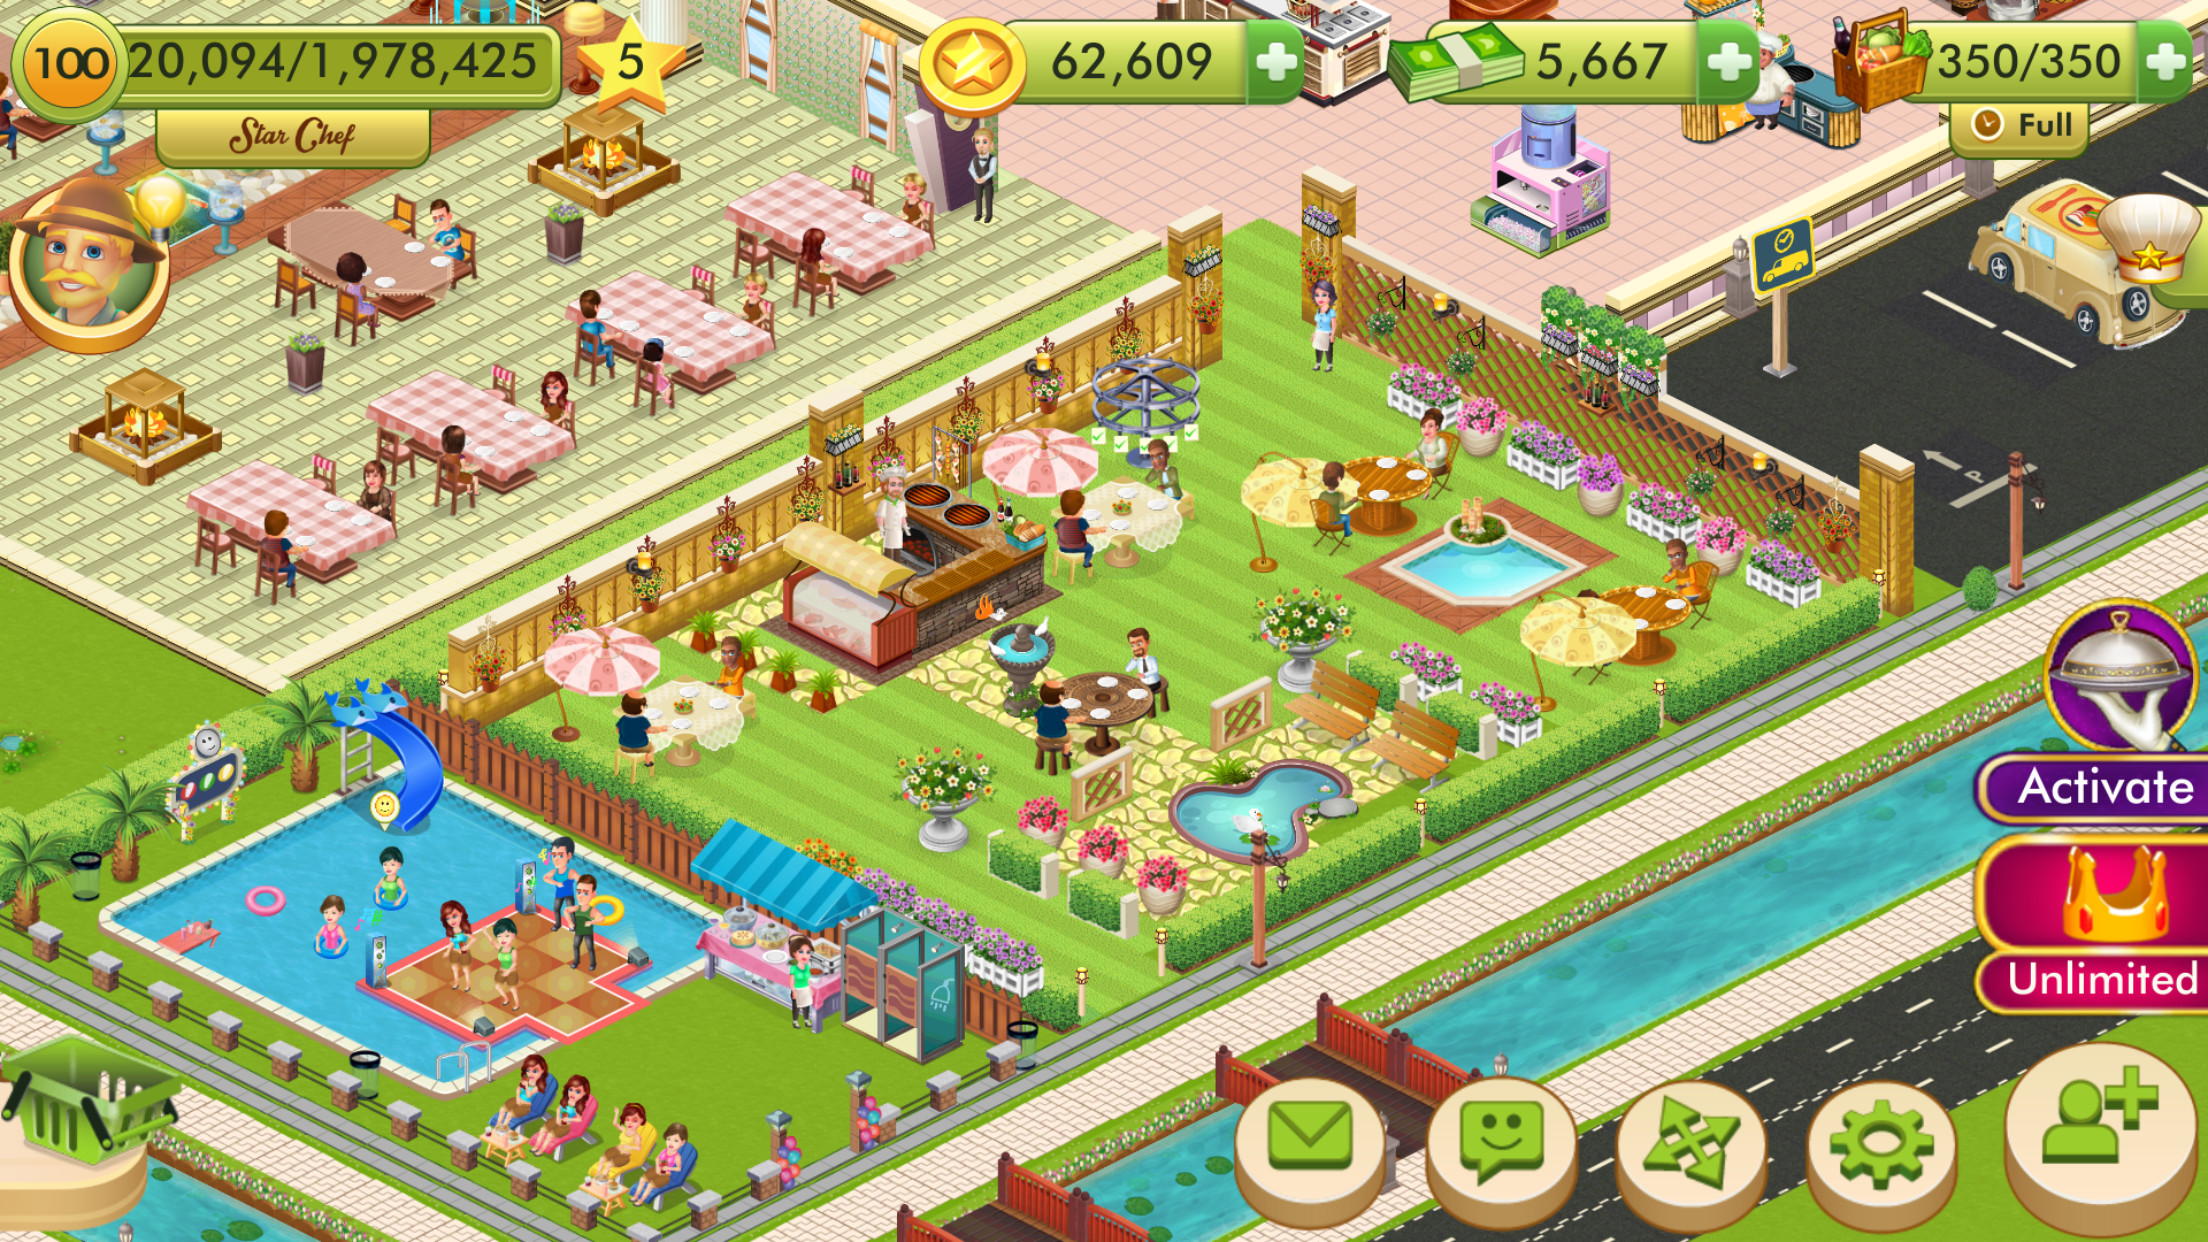 Star Chef: Cooking & Restaurant Game Steam Discovery